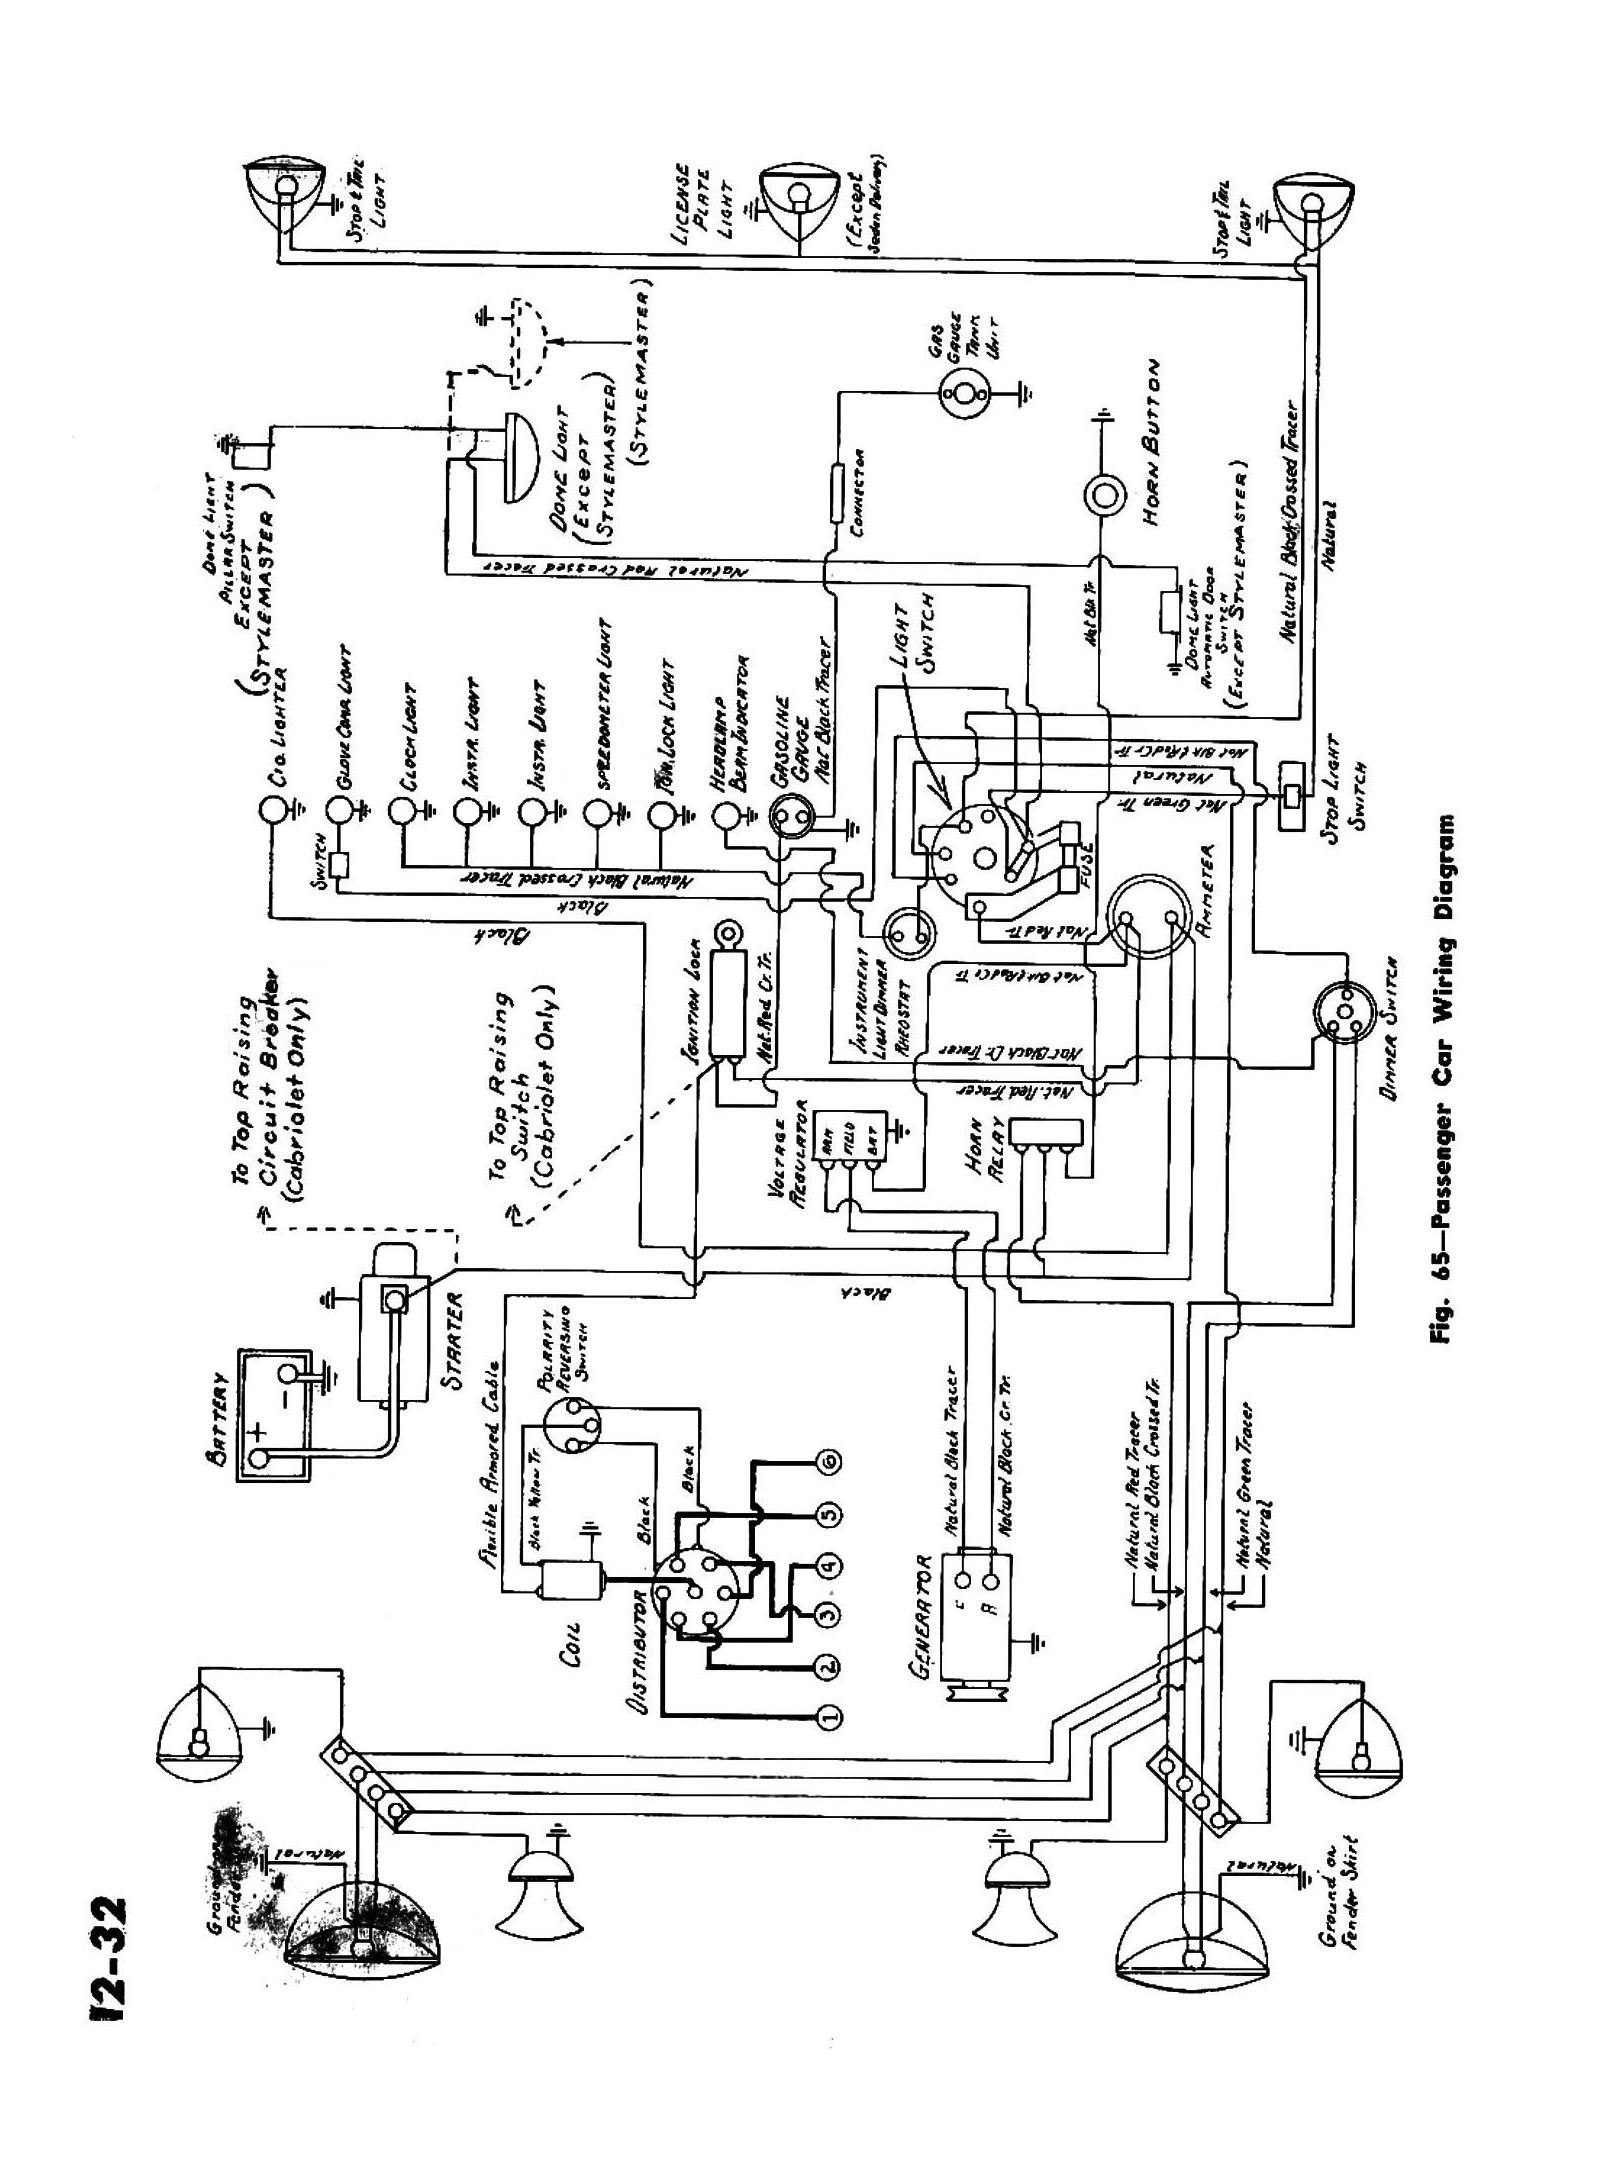 Chevy Wiring Diagrams Basic Electrical On In The Home 1945 Passenger Car